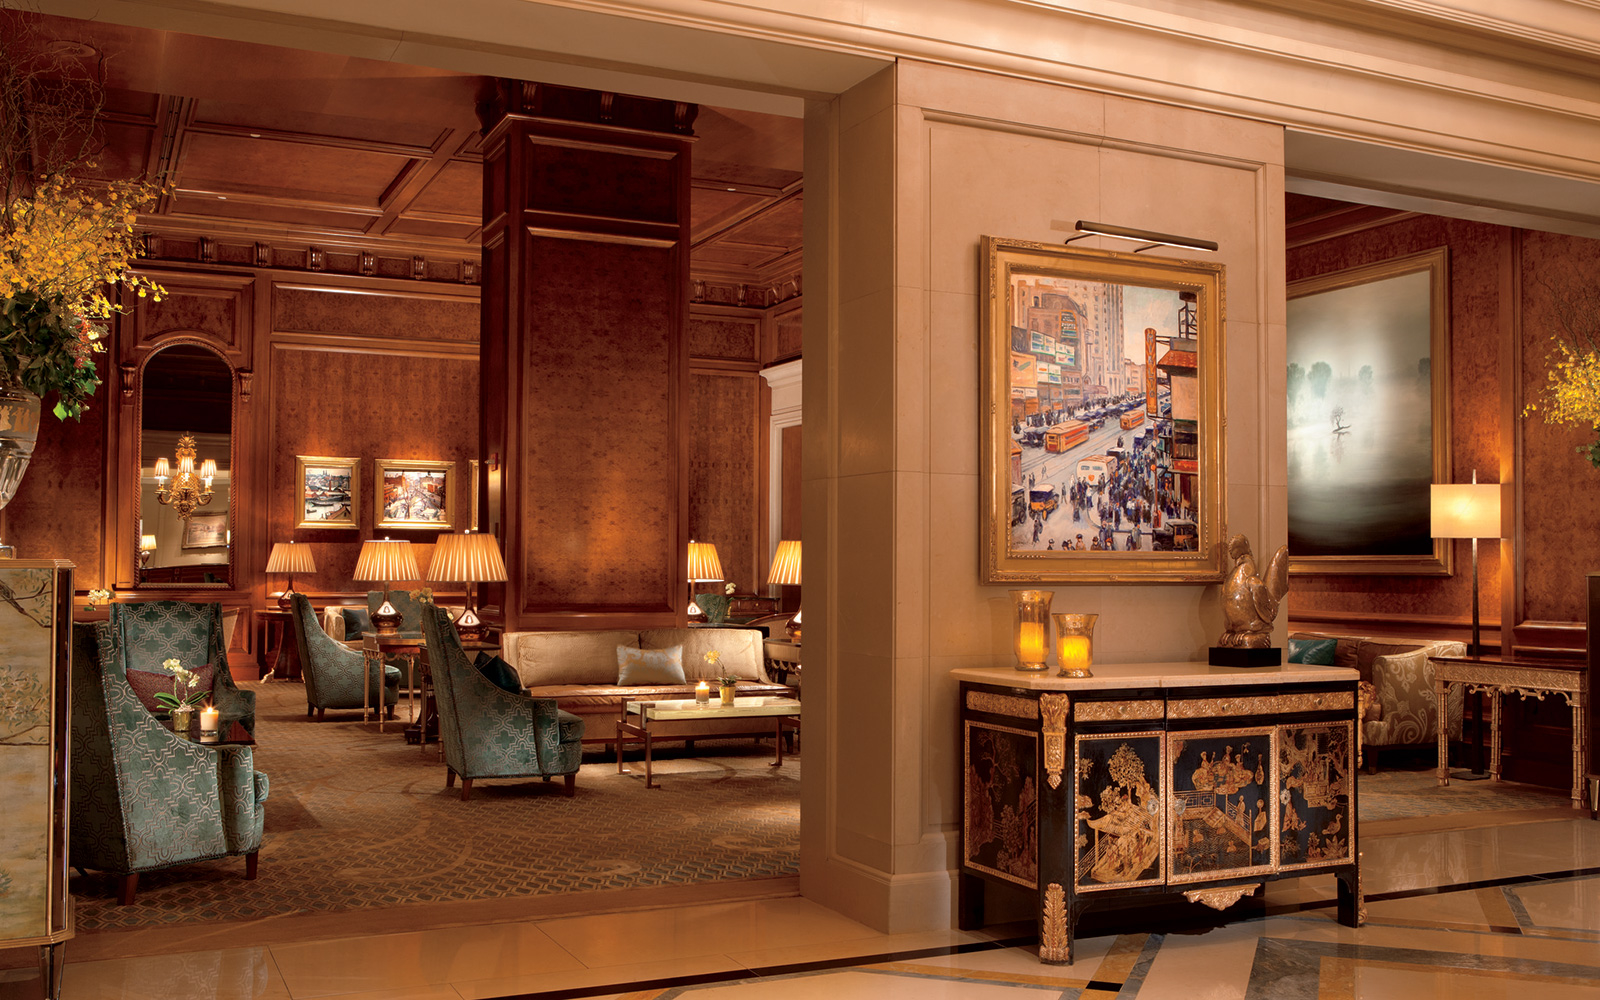 No. 18 Ritz-Carlton New York, Central Park in New York City